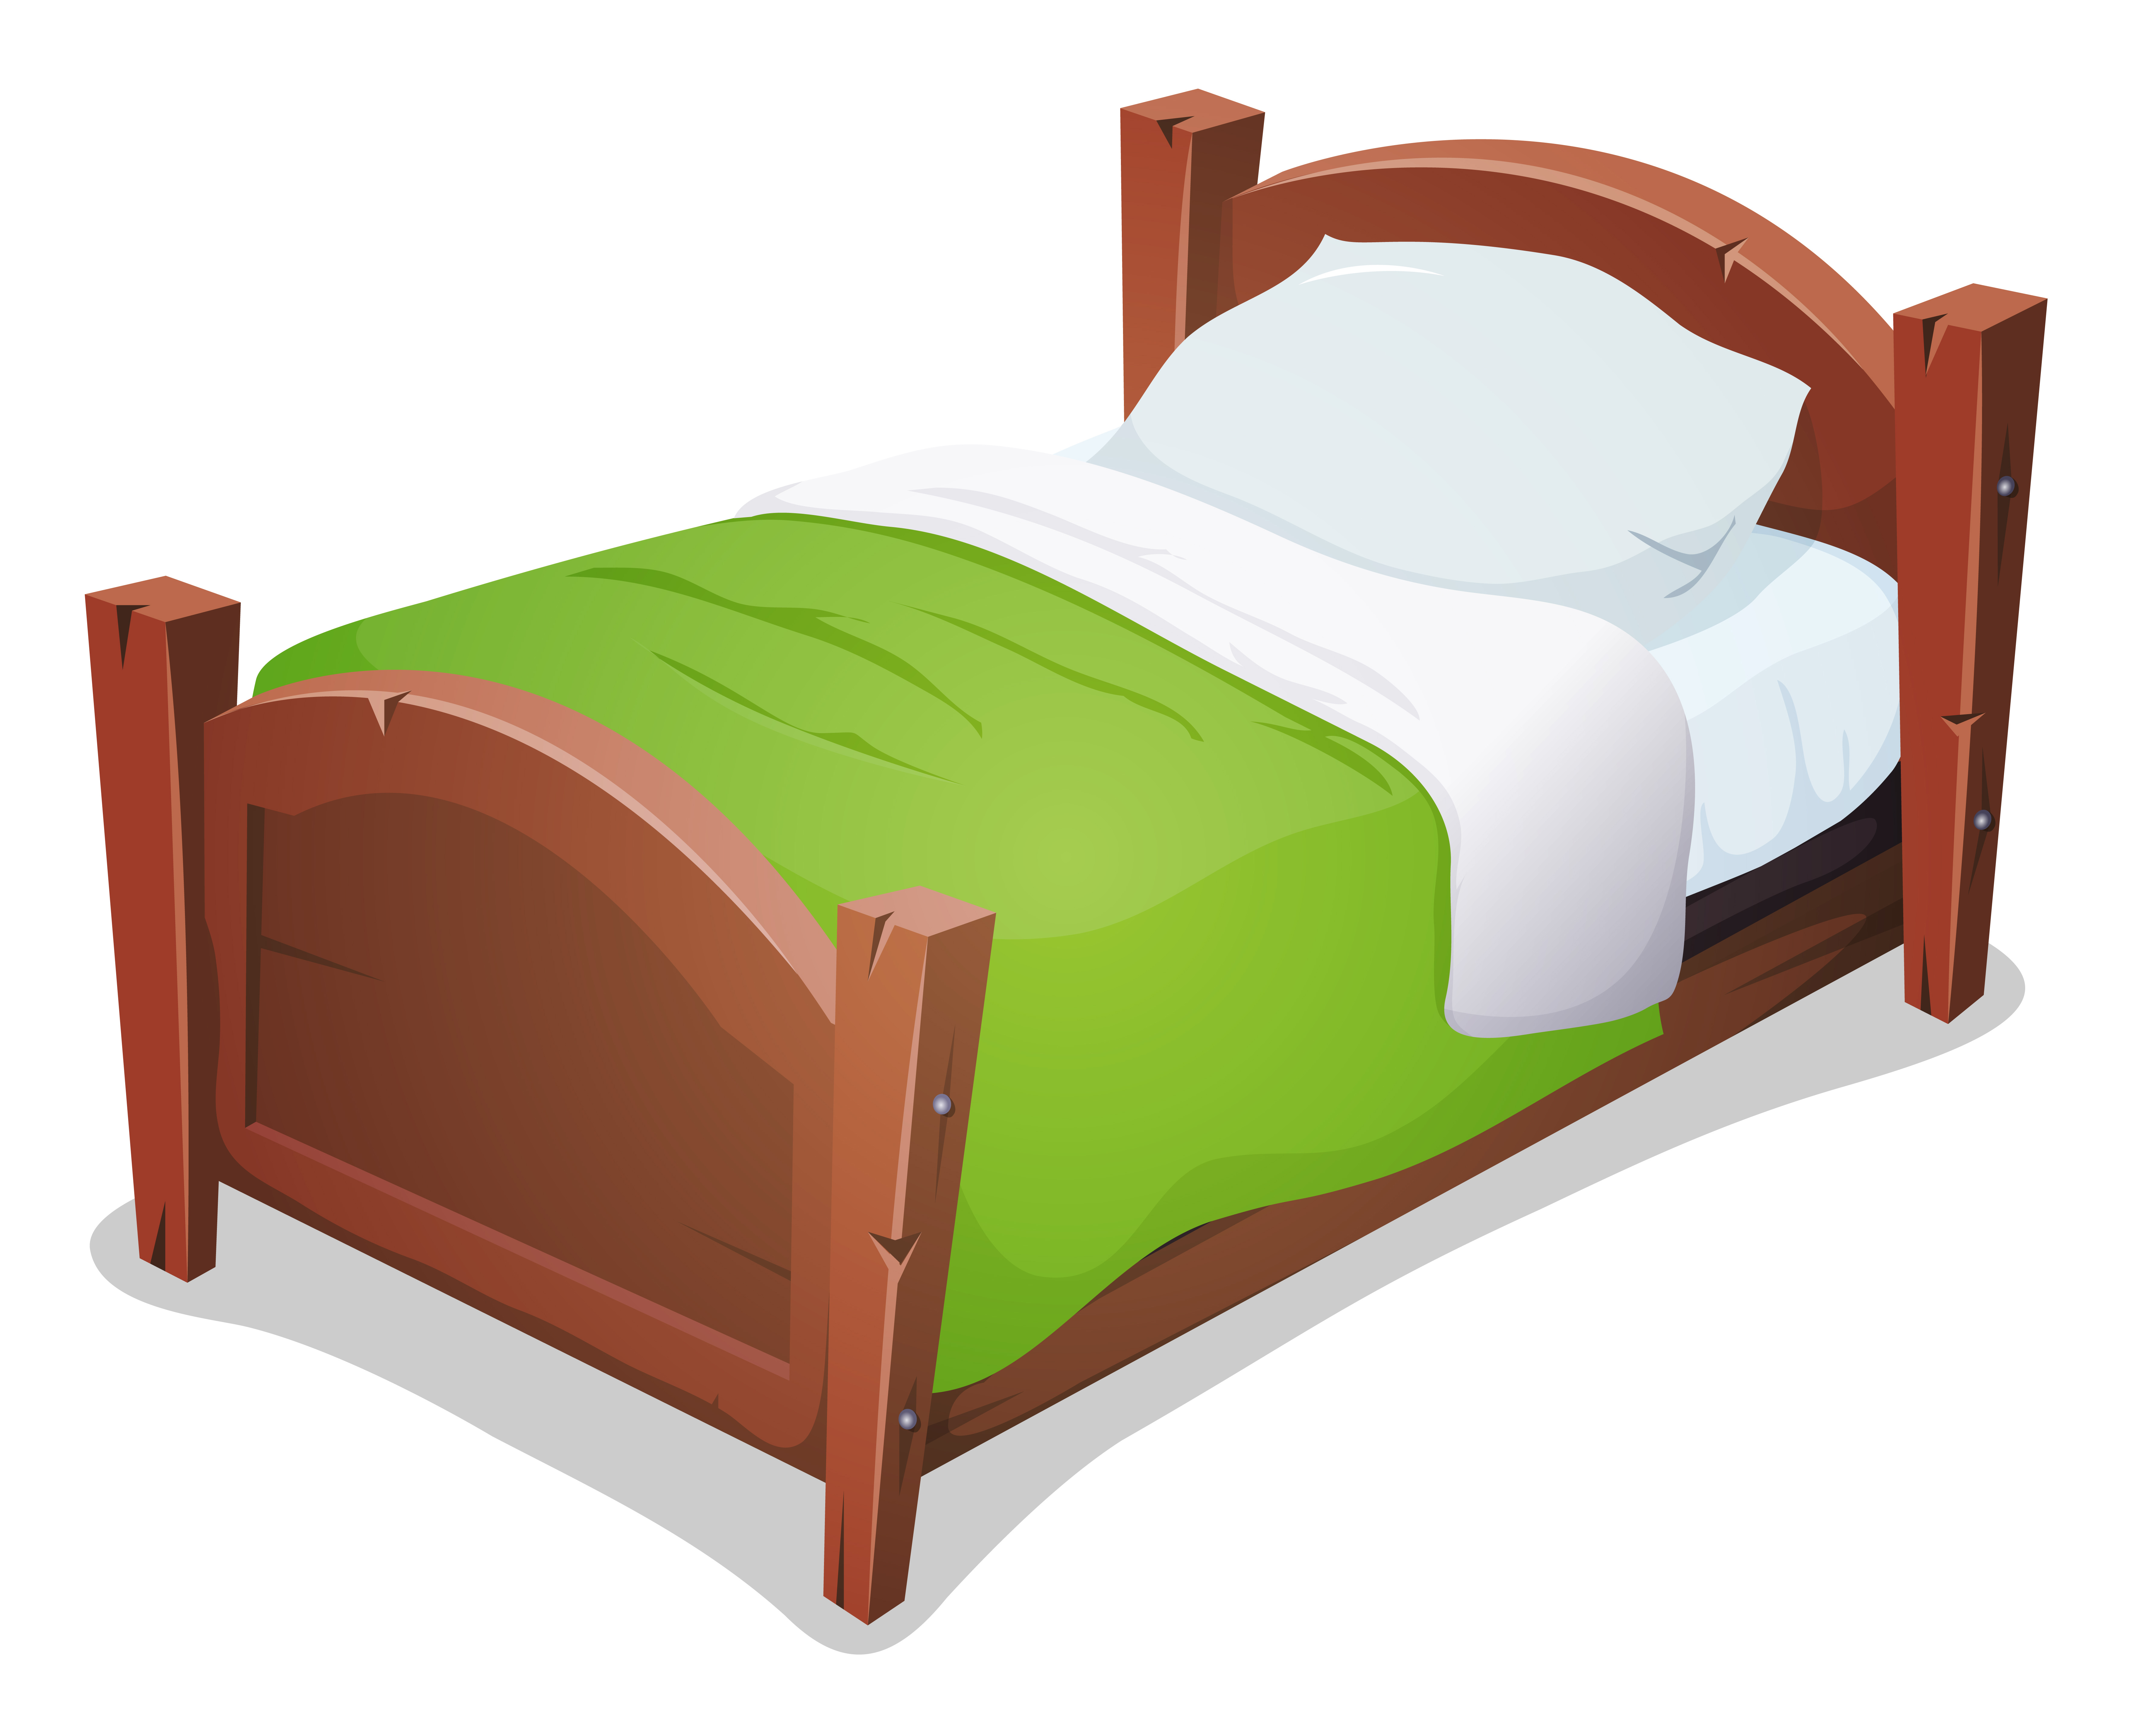 Wood Bed With Green Blanket Vector Download Free Vector